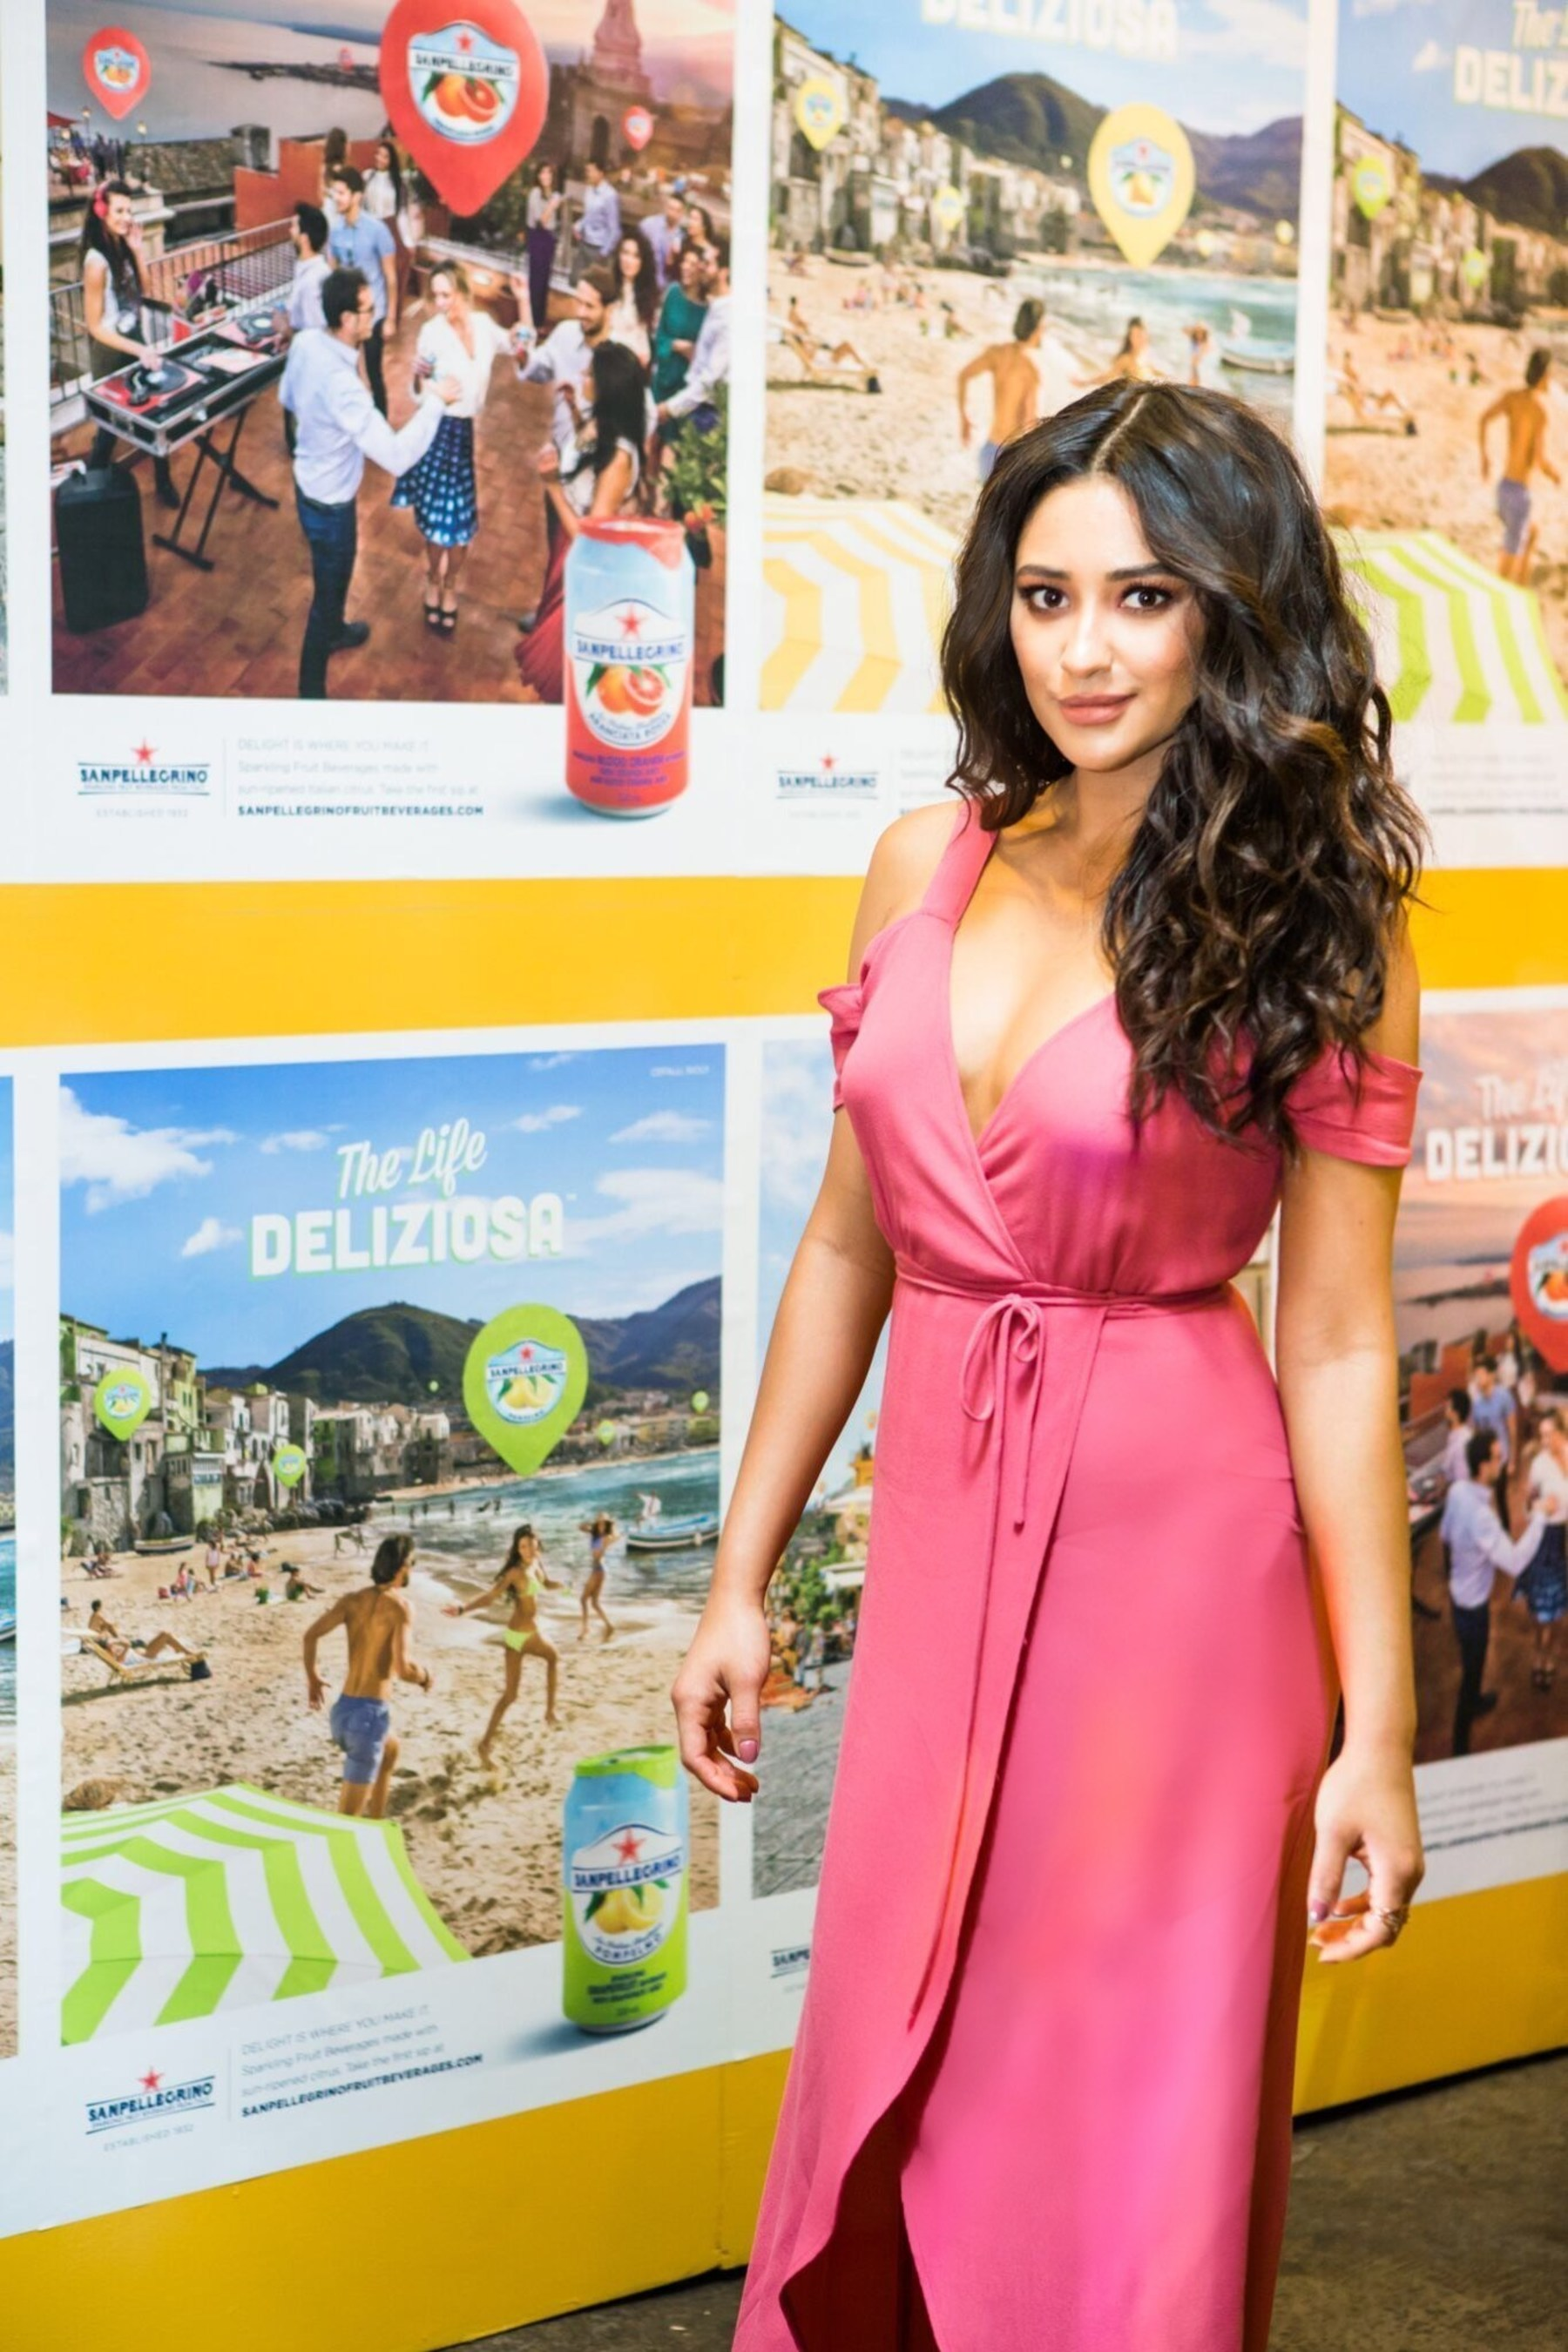 On June 14, 2016 in New York City, Shay Mitchell and Sanpellegrino Sparkling Fruit Beverages celebrated the launch of Delightways - the brand's new interactive app that helps users wander, explore and discover the Life Deliziosa.  Delightways is now available to download at www.sanpellegrinofruitbeverages.com and in the App Store and Google Play.(Photo: Patrick MacLeod)